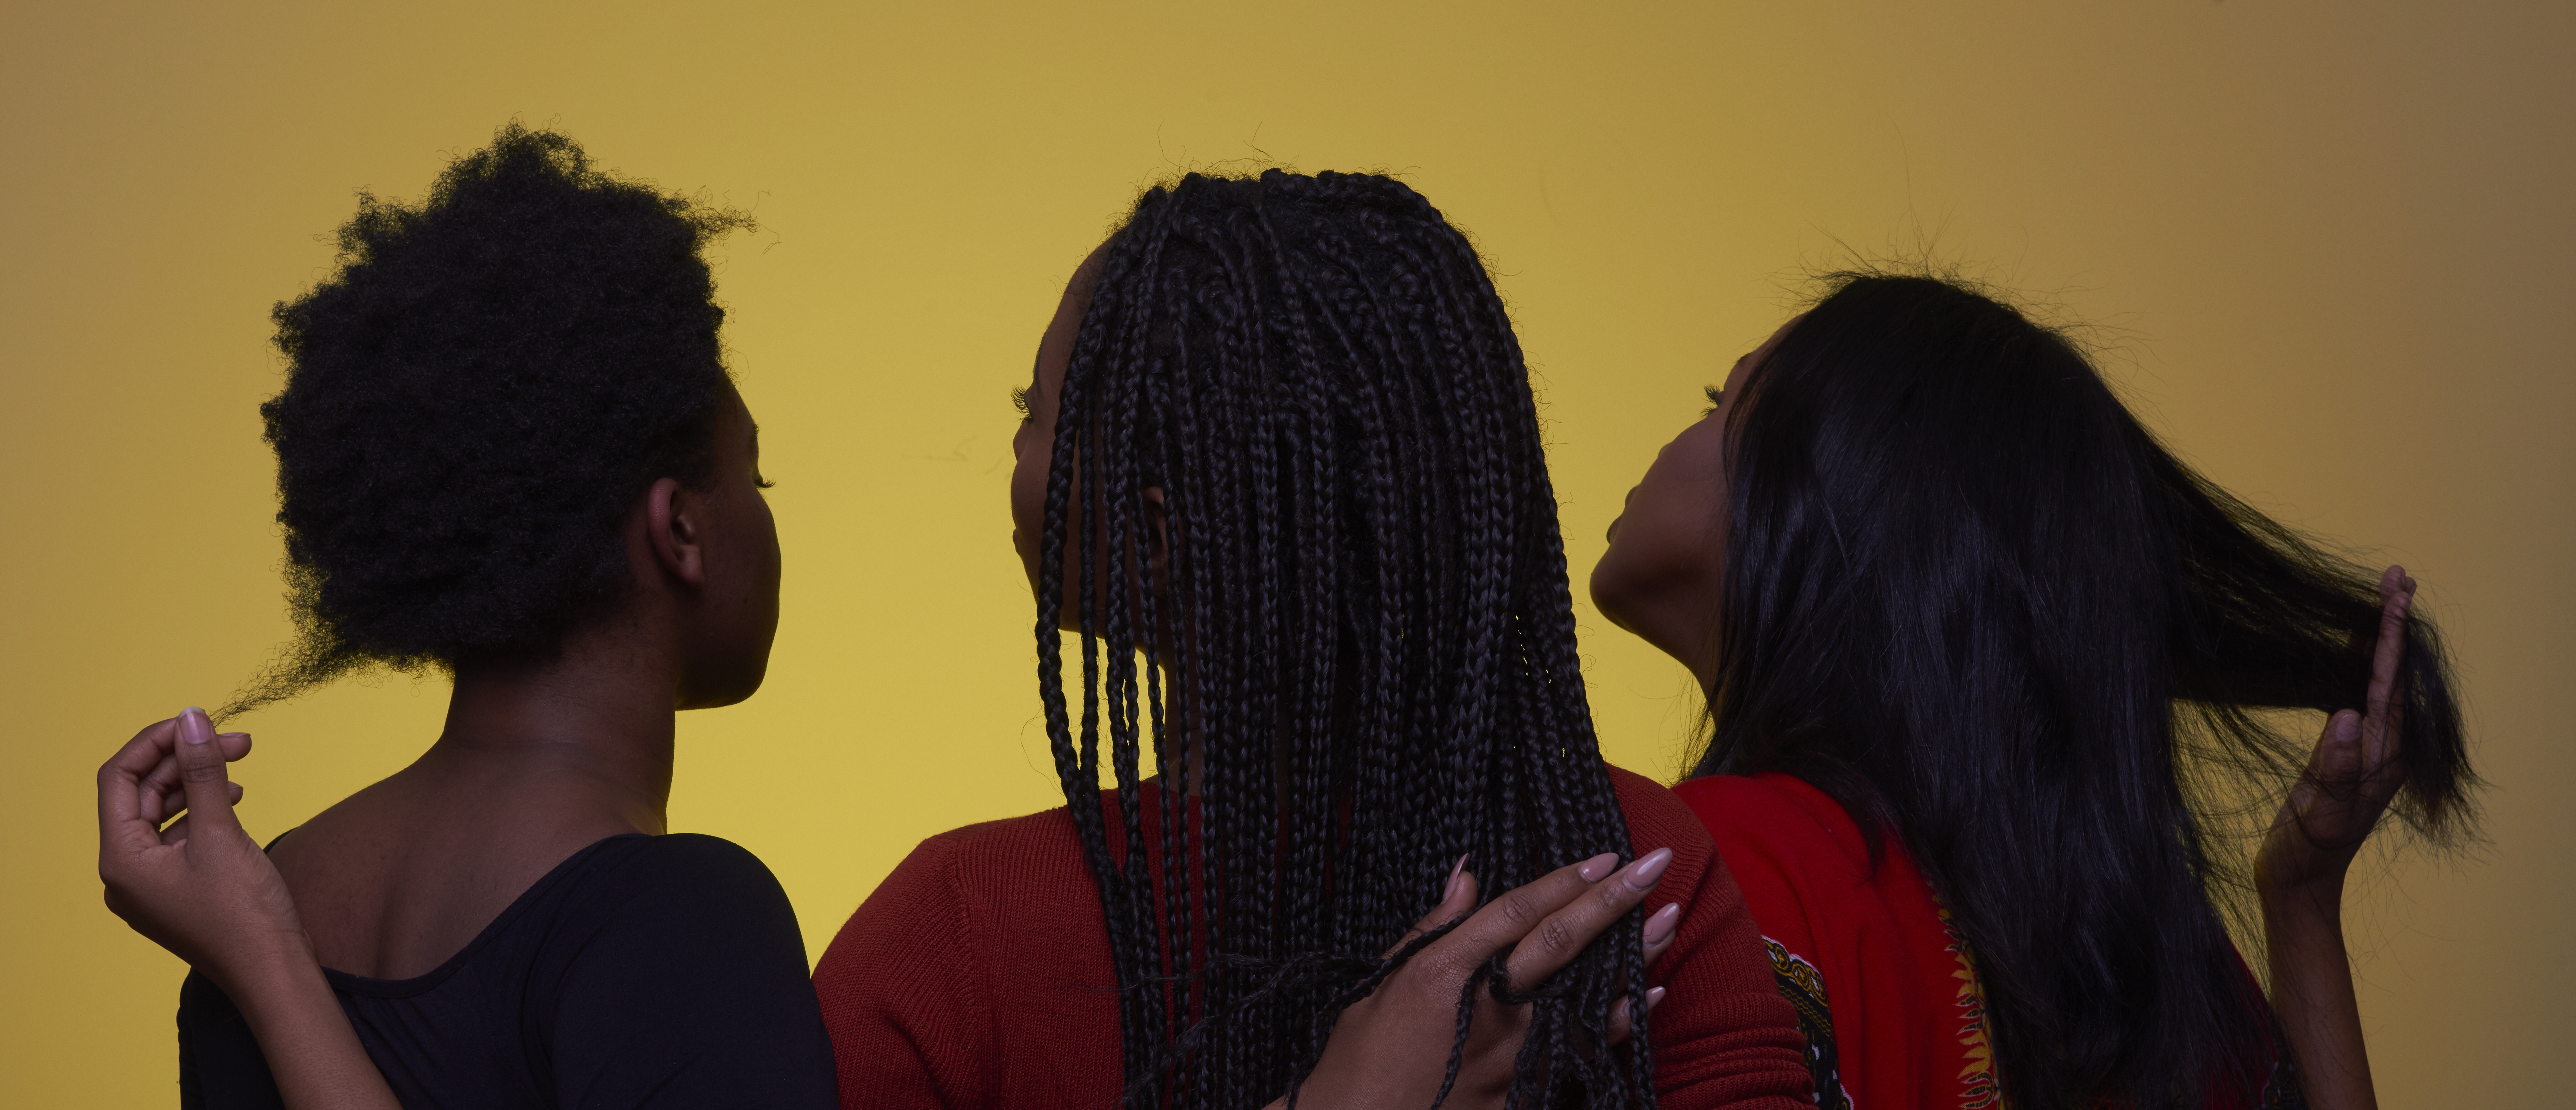 Bria McLaughlin, Asha James and Fatuma Adar. Photo by Cesar Ghisilieri.